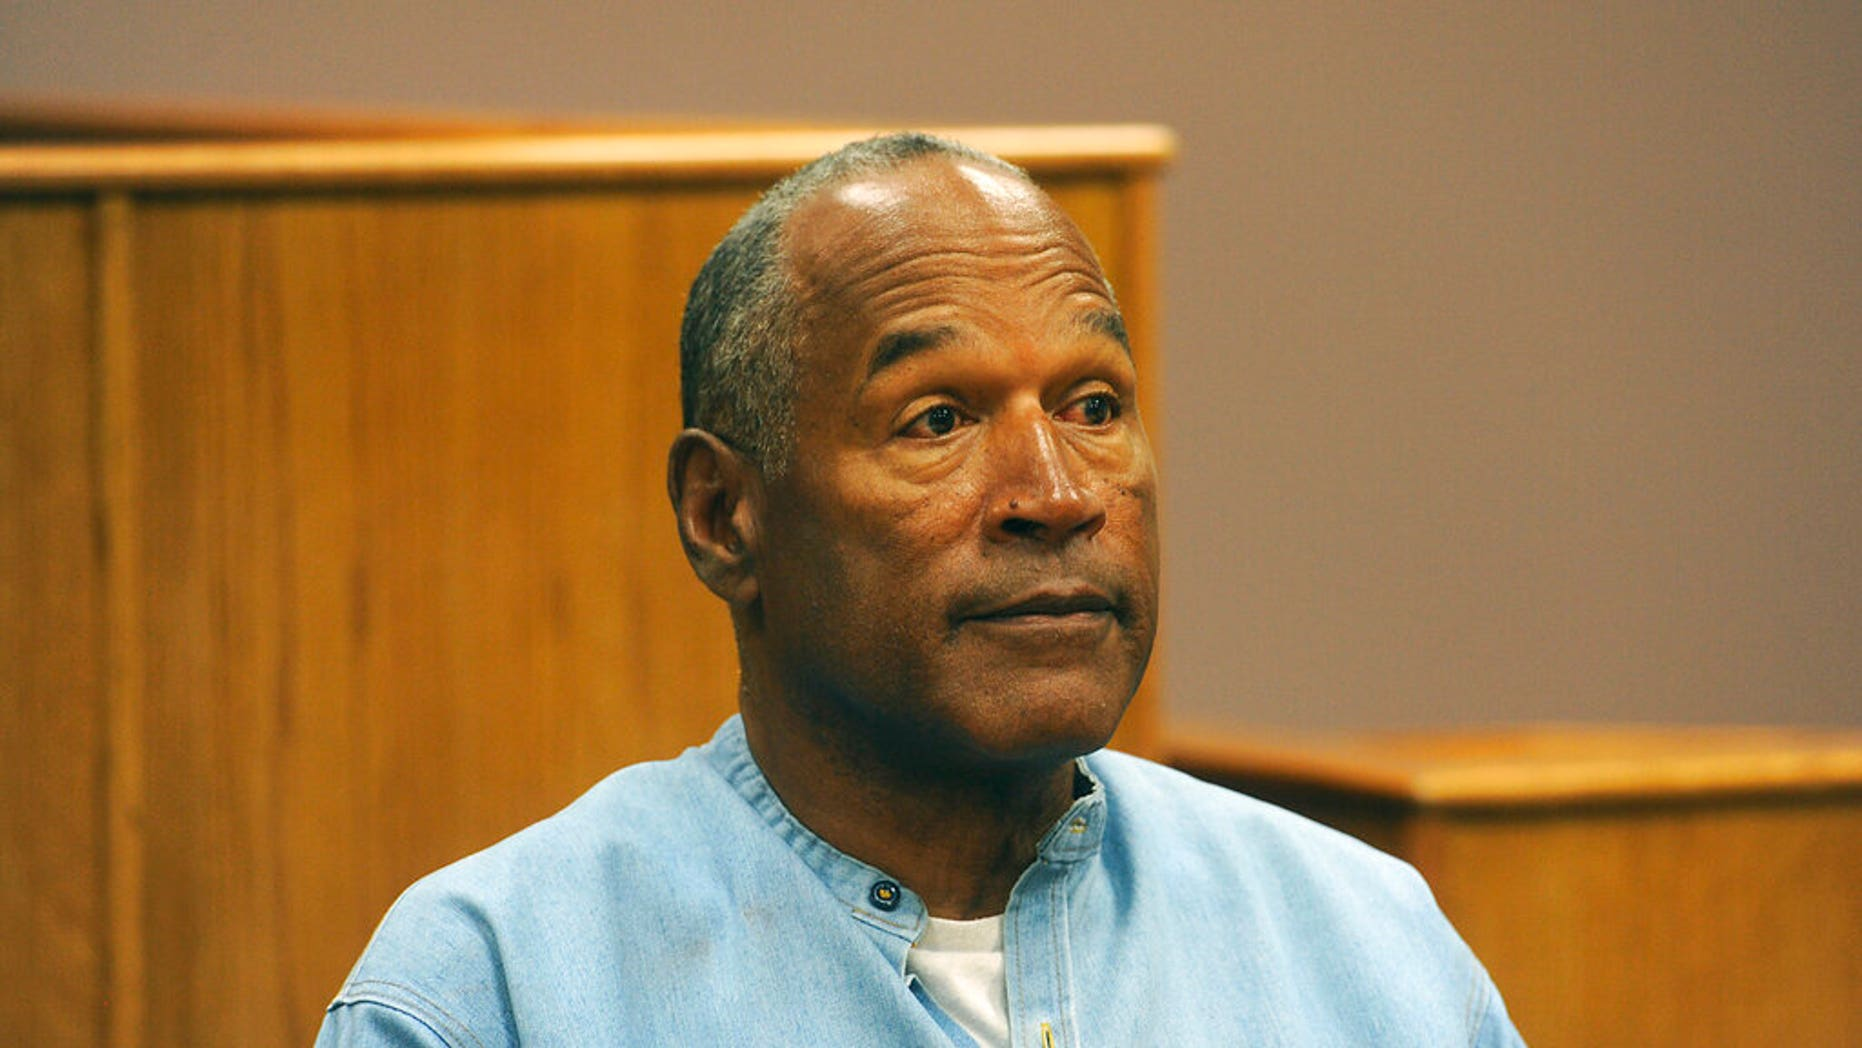 O.J. Simpson Addresses Khloe Kardashian Rumors